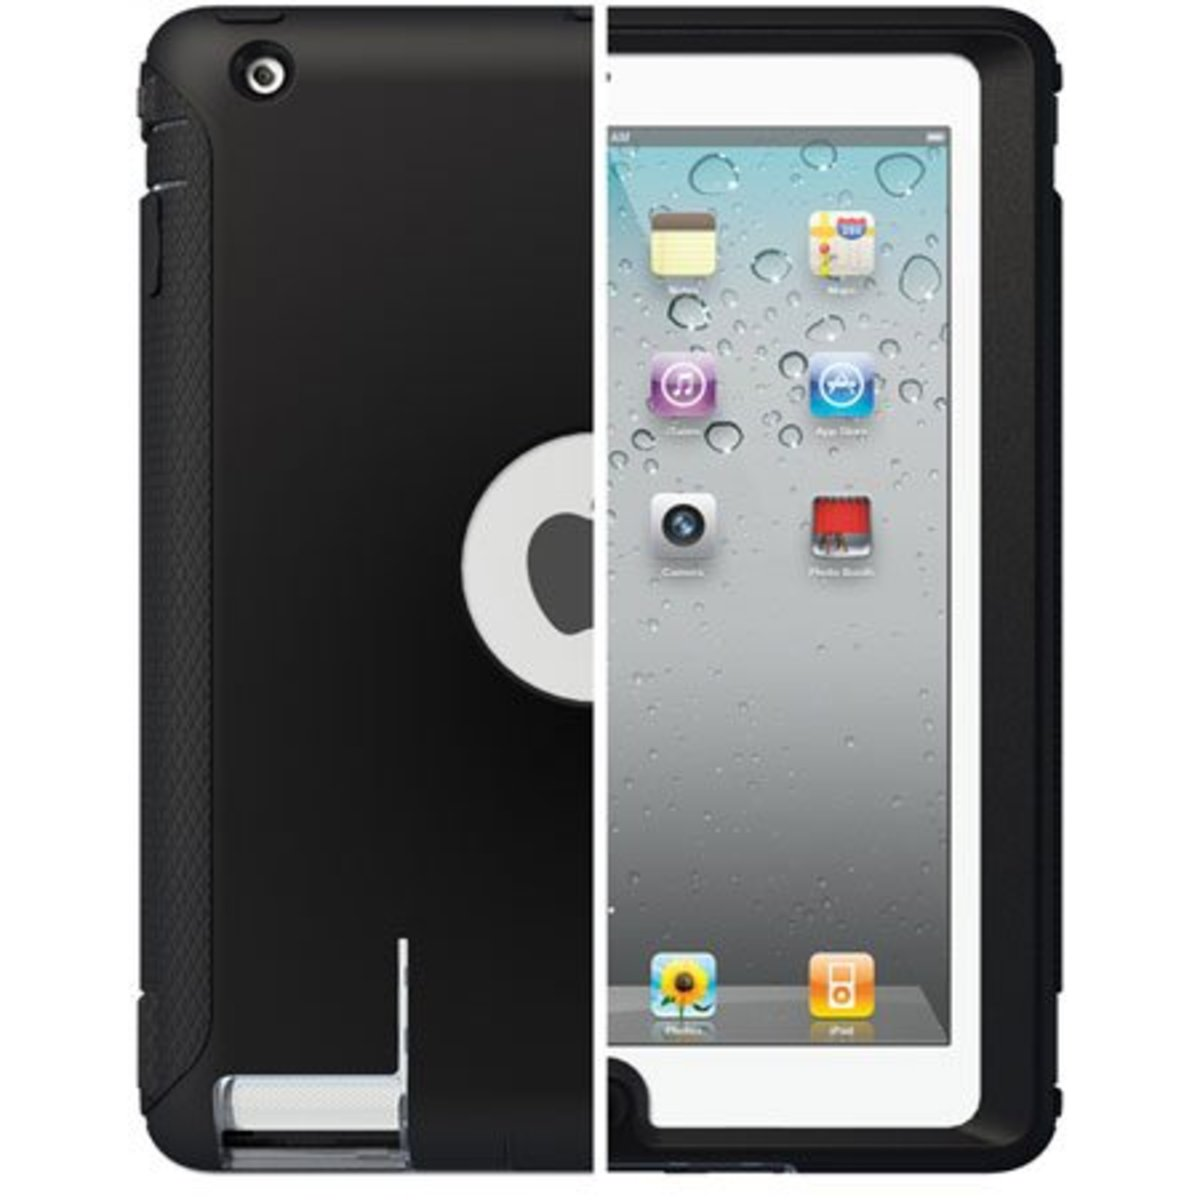 How to Put On and Remove OtterBox Defender for iPad